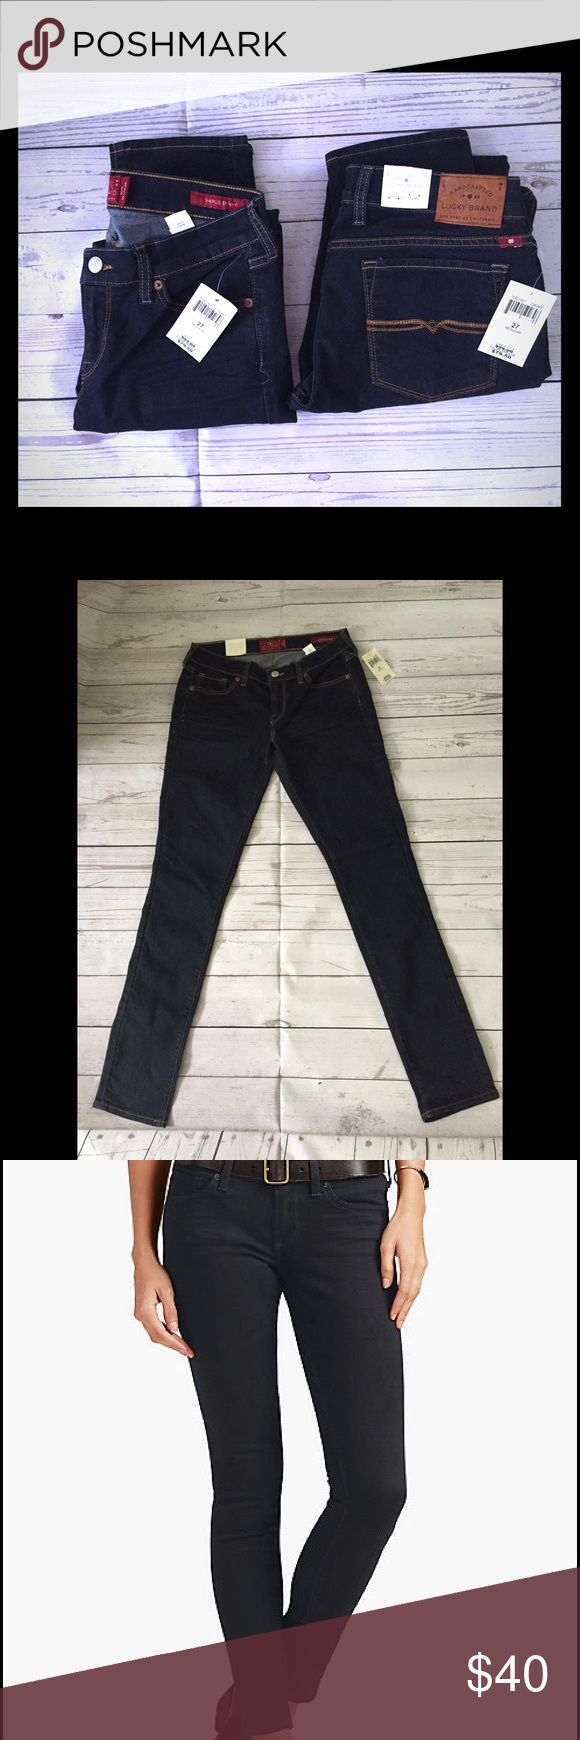 "NWT Lucky Brand Charlie Skinny size 4R/27 New with tags Lucky Brand Charlie skinny. Purchased at the outlet, original retail price of $79.50. Nice dark wash, low rise (but not too low) fit, they sit a bit below the waist. Size 4 regular, 32"" length. Lucky Brand Jeans Skinny"